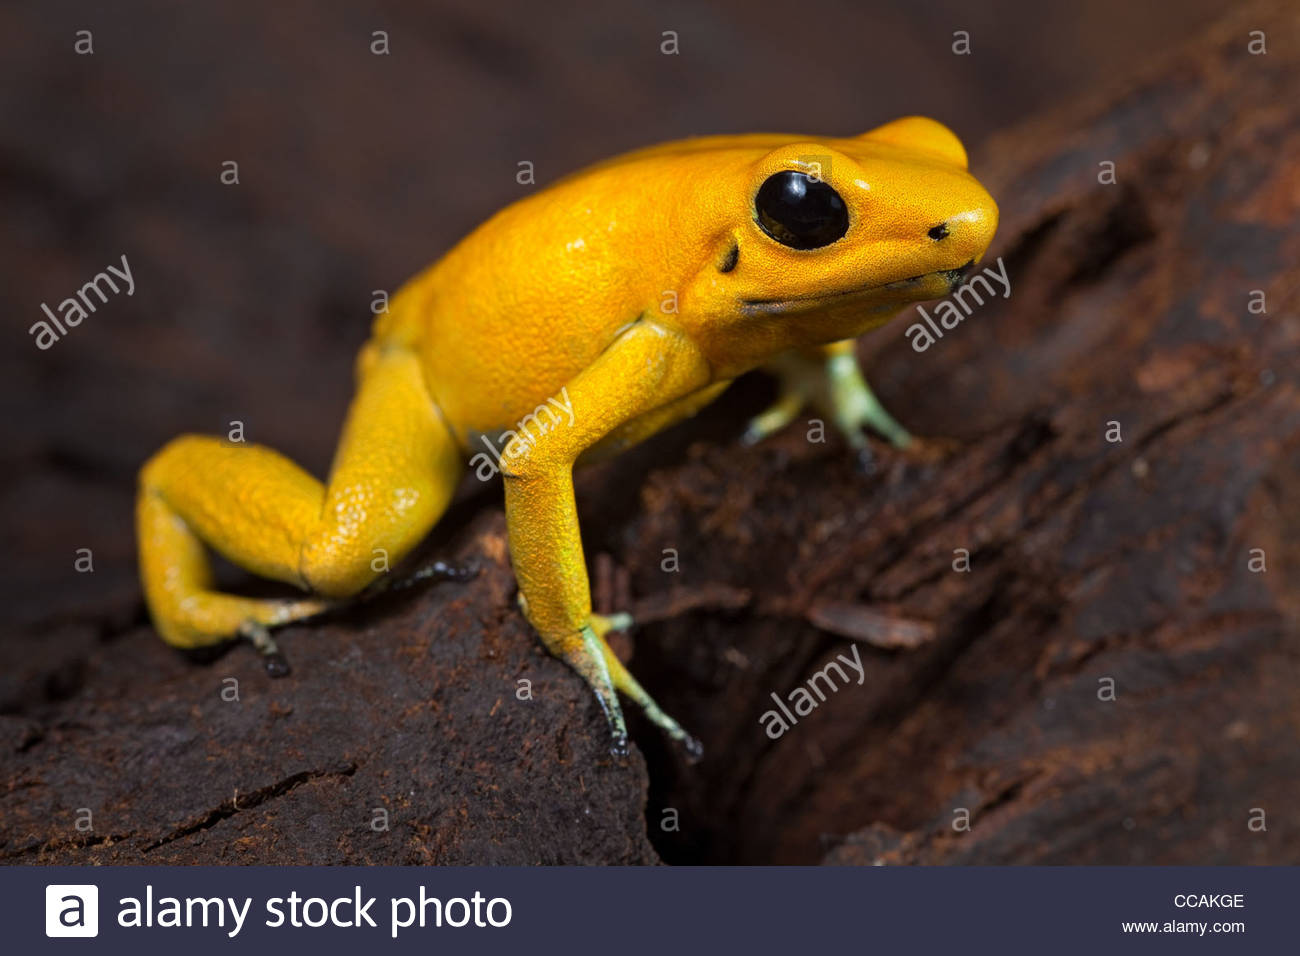 1300x956 > Golden Poison Frog Wallpapers